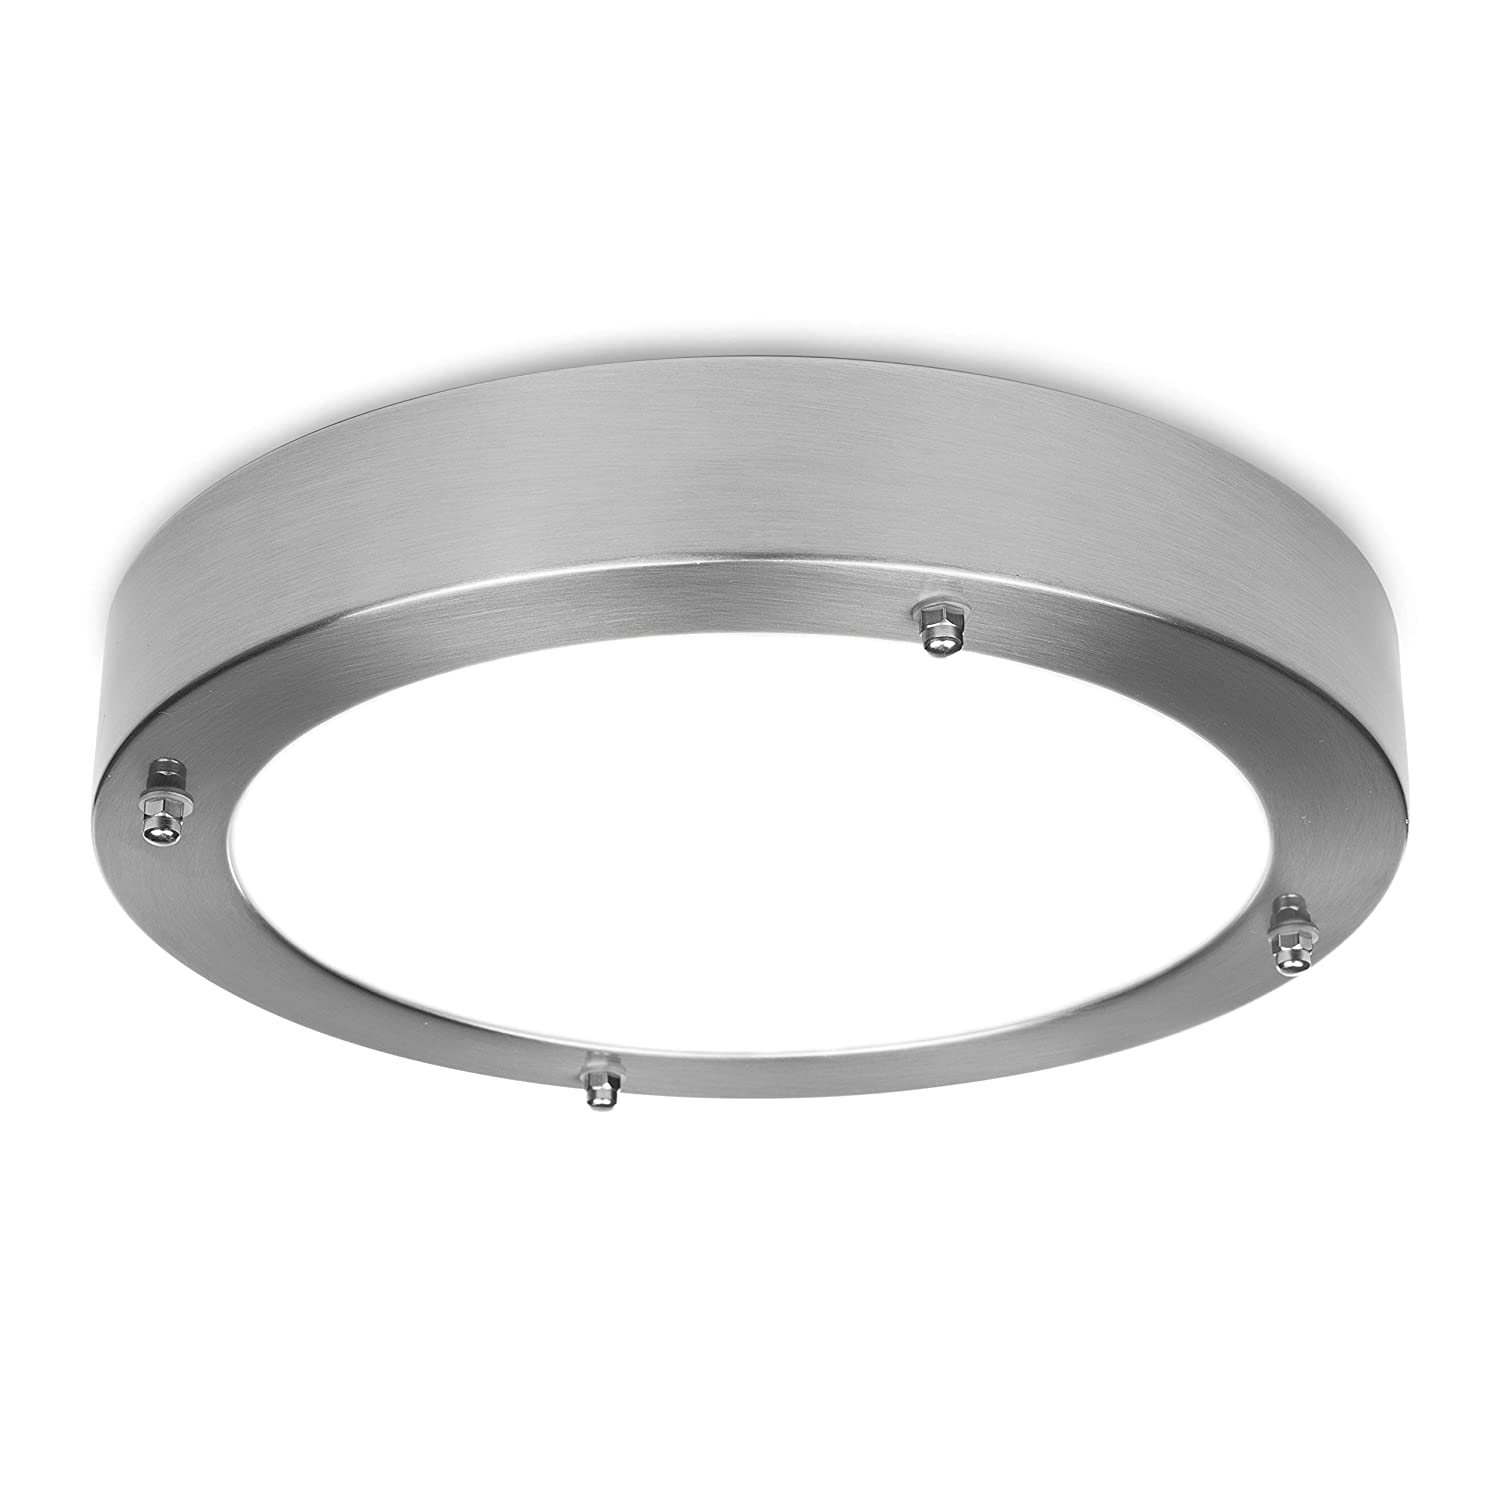 Smartwares LED Ceiling Light, Metal, Gray IWL-60004